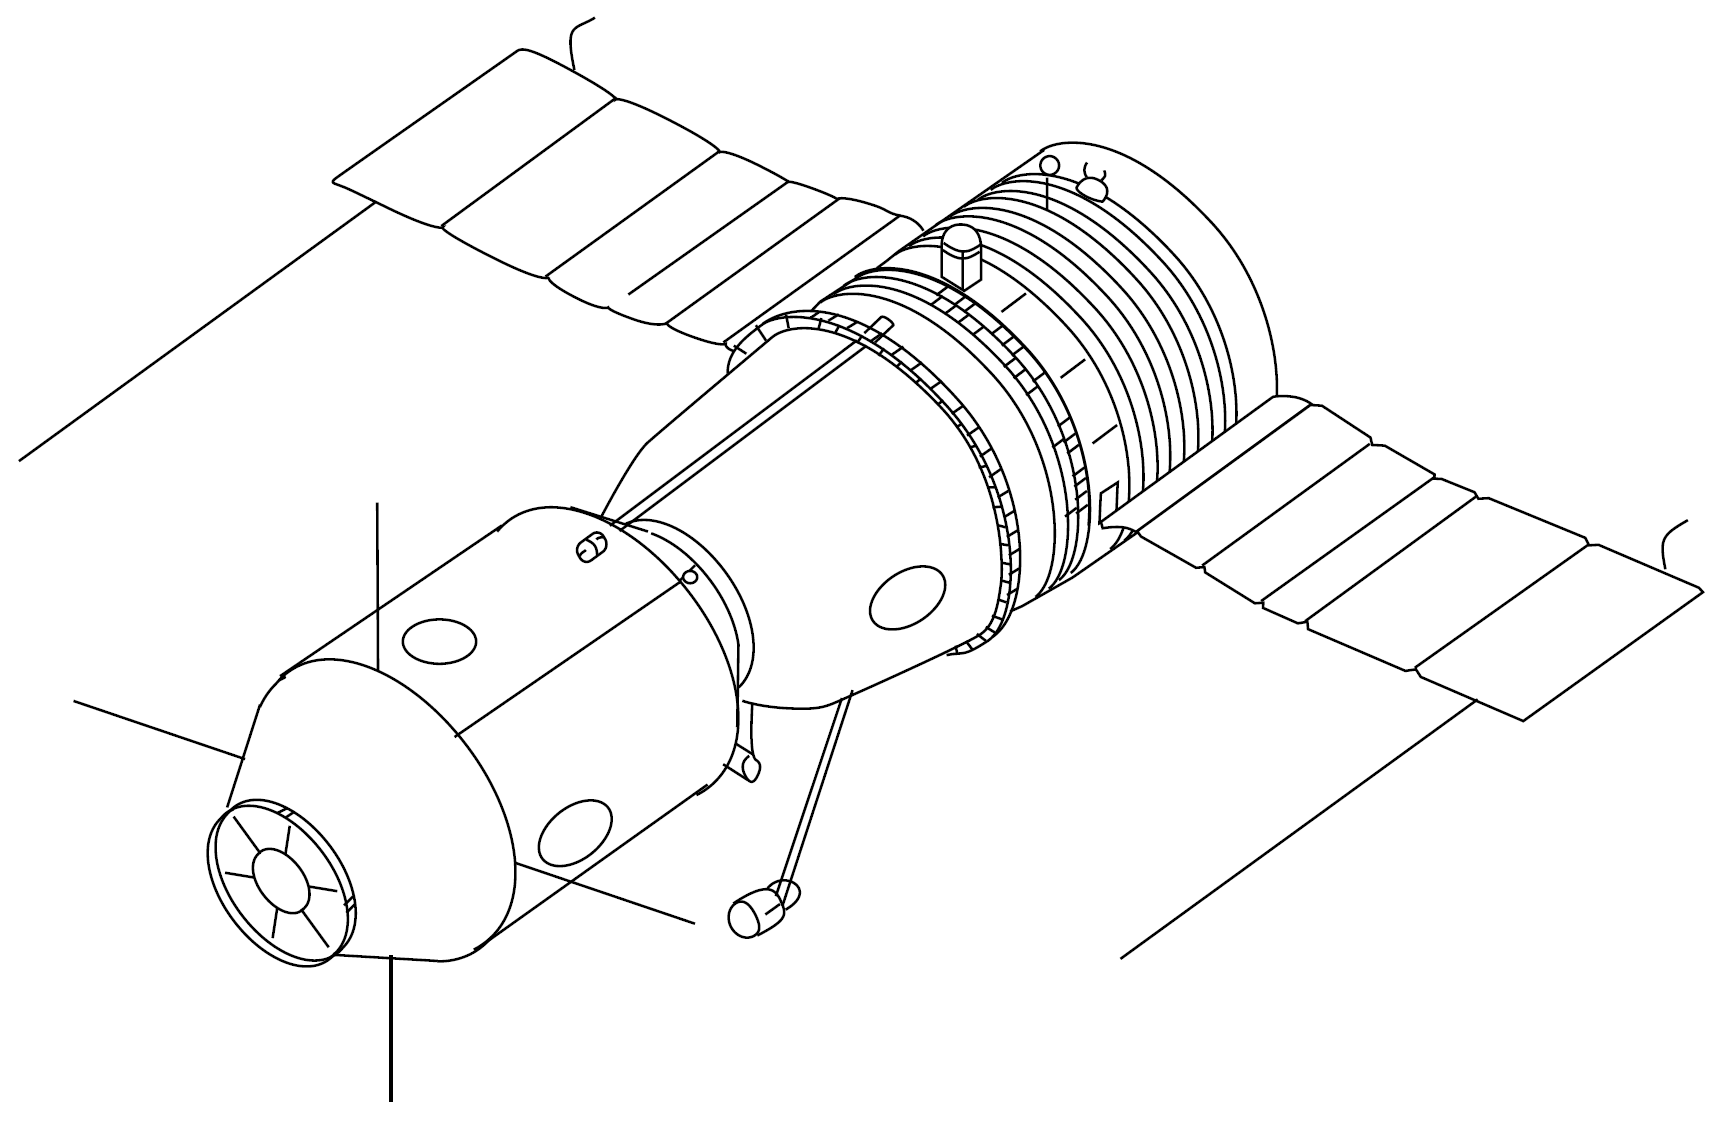 spacecraft drawing - photo #19